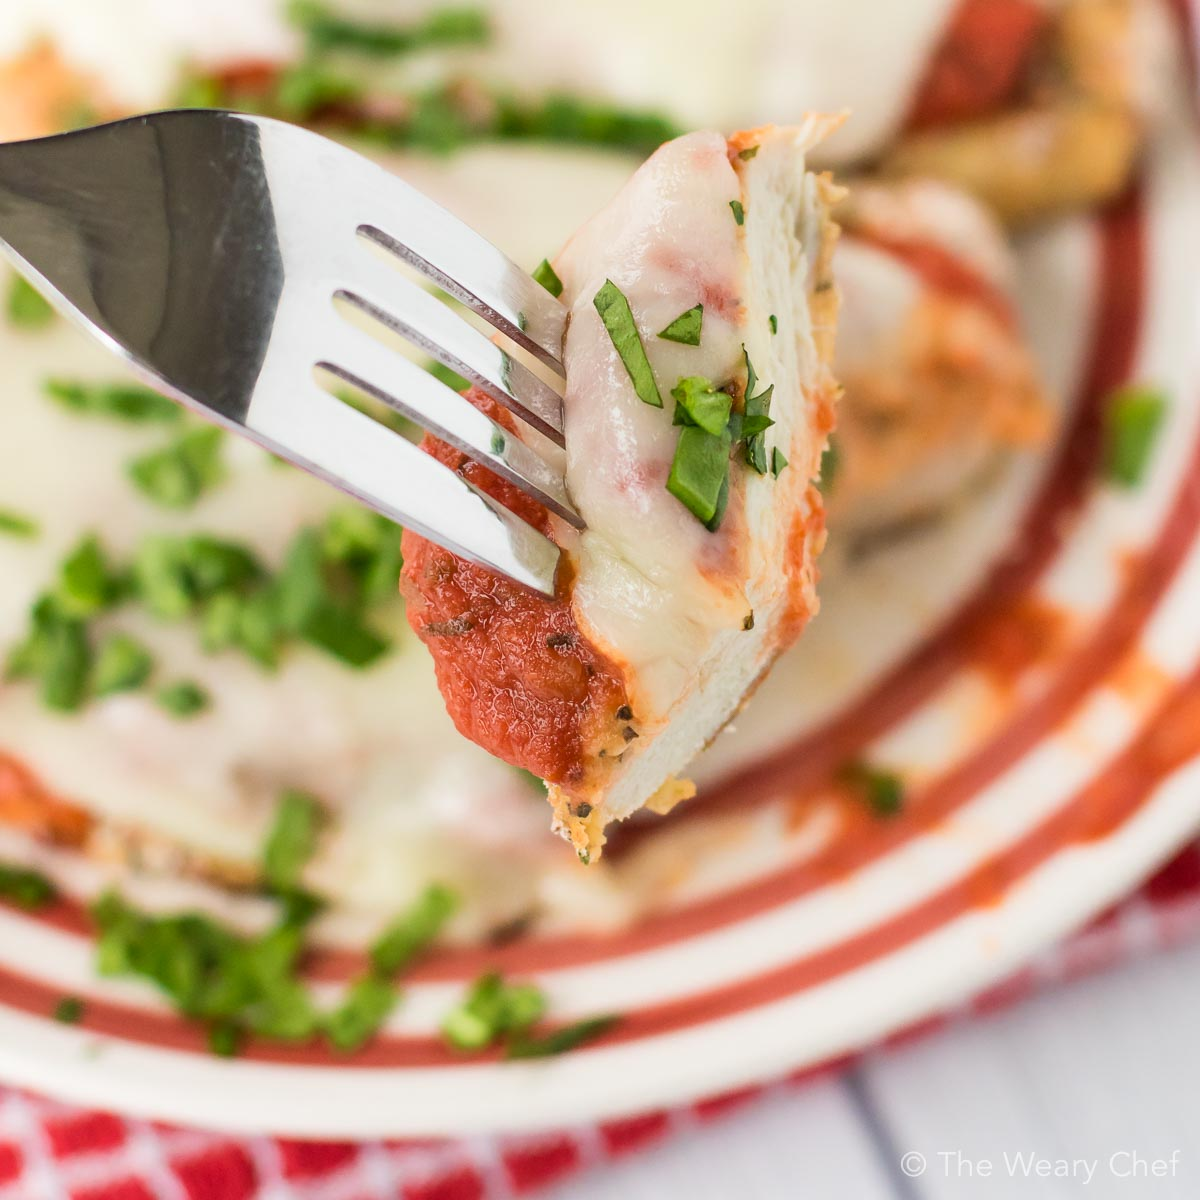 This Baked Chicken Parmesan is healthier, easier, and less messy than the classic version. Your family or guests will love this easy Italian dinner recipe!